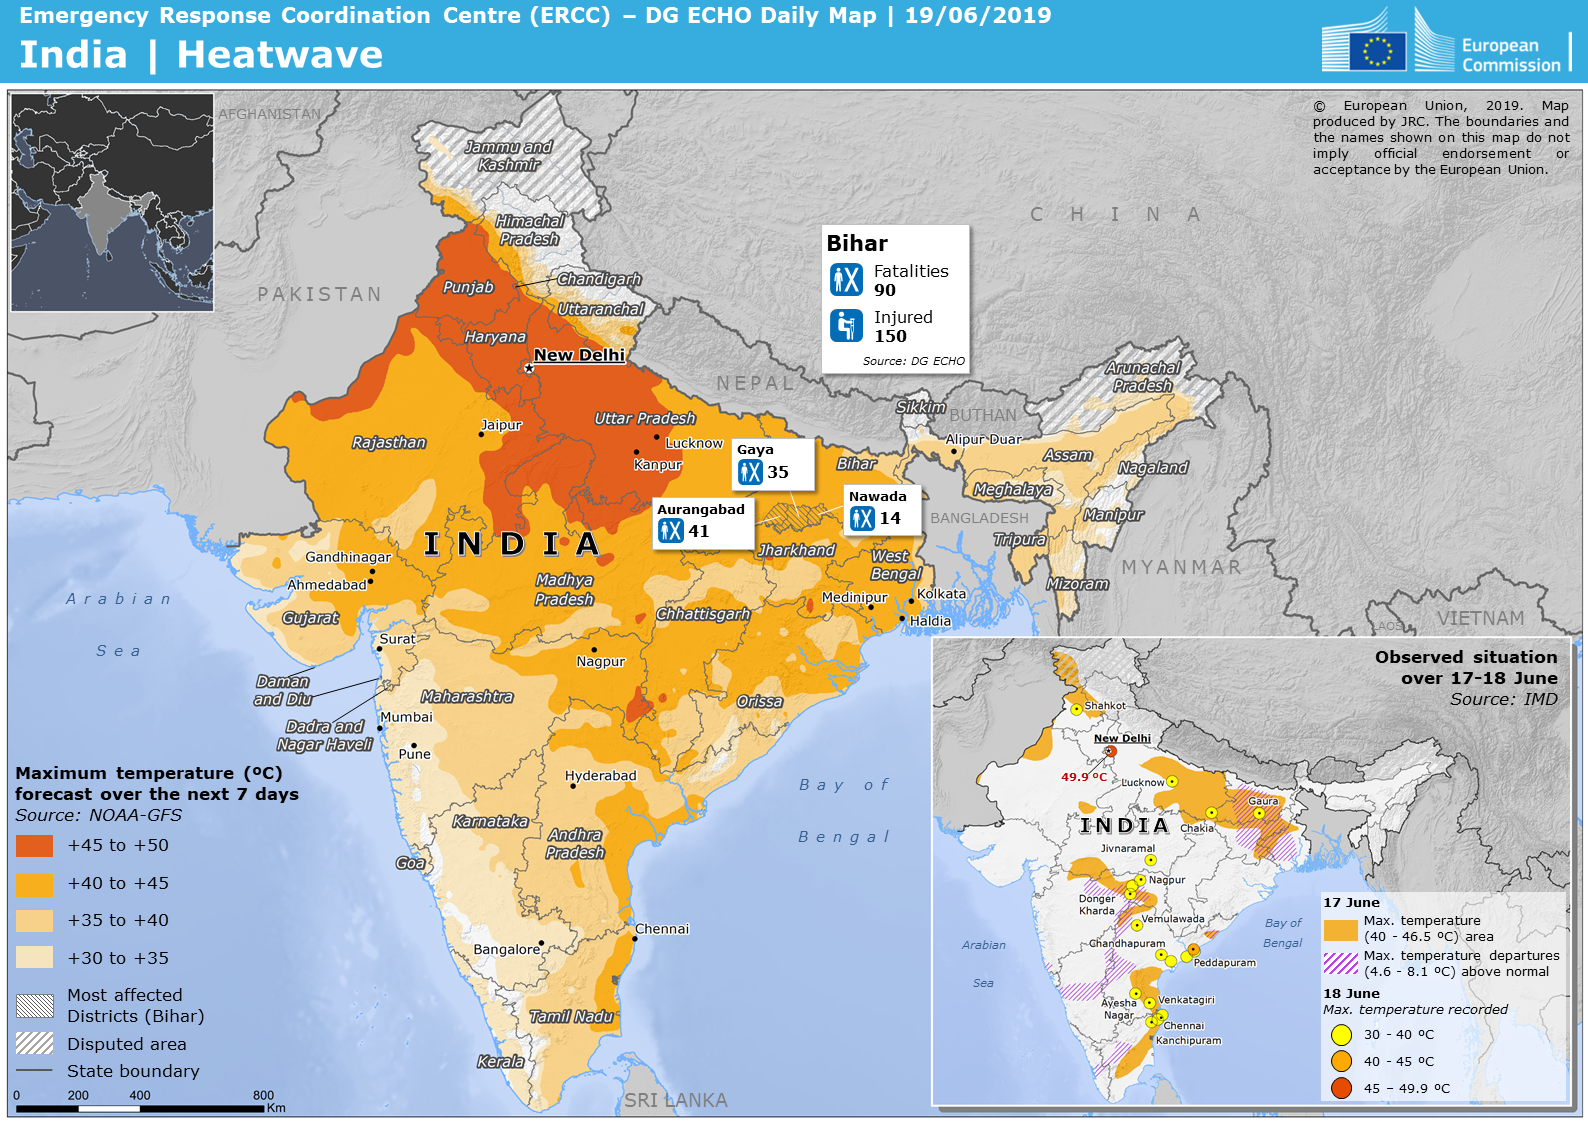 ECDM_20190619_India_Heatwave.png